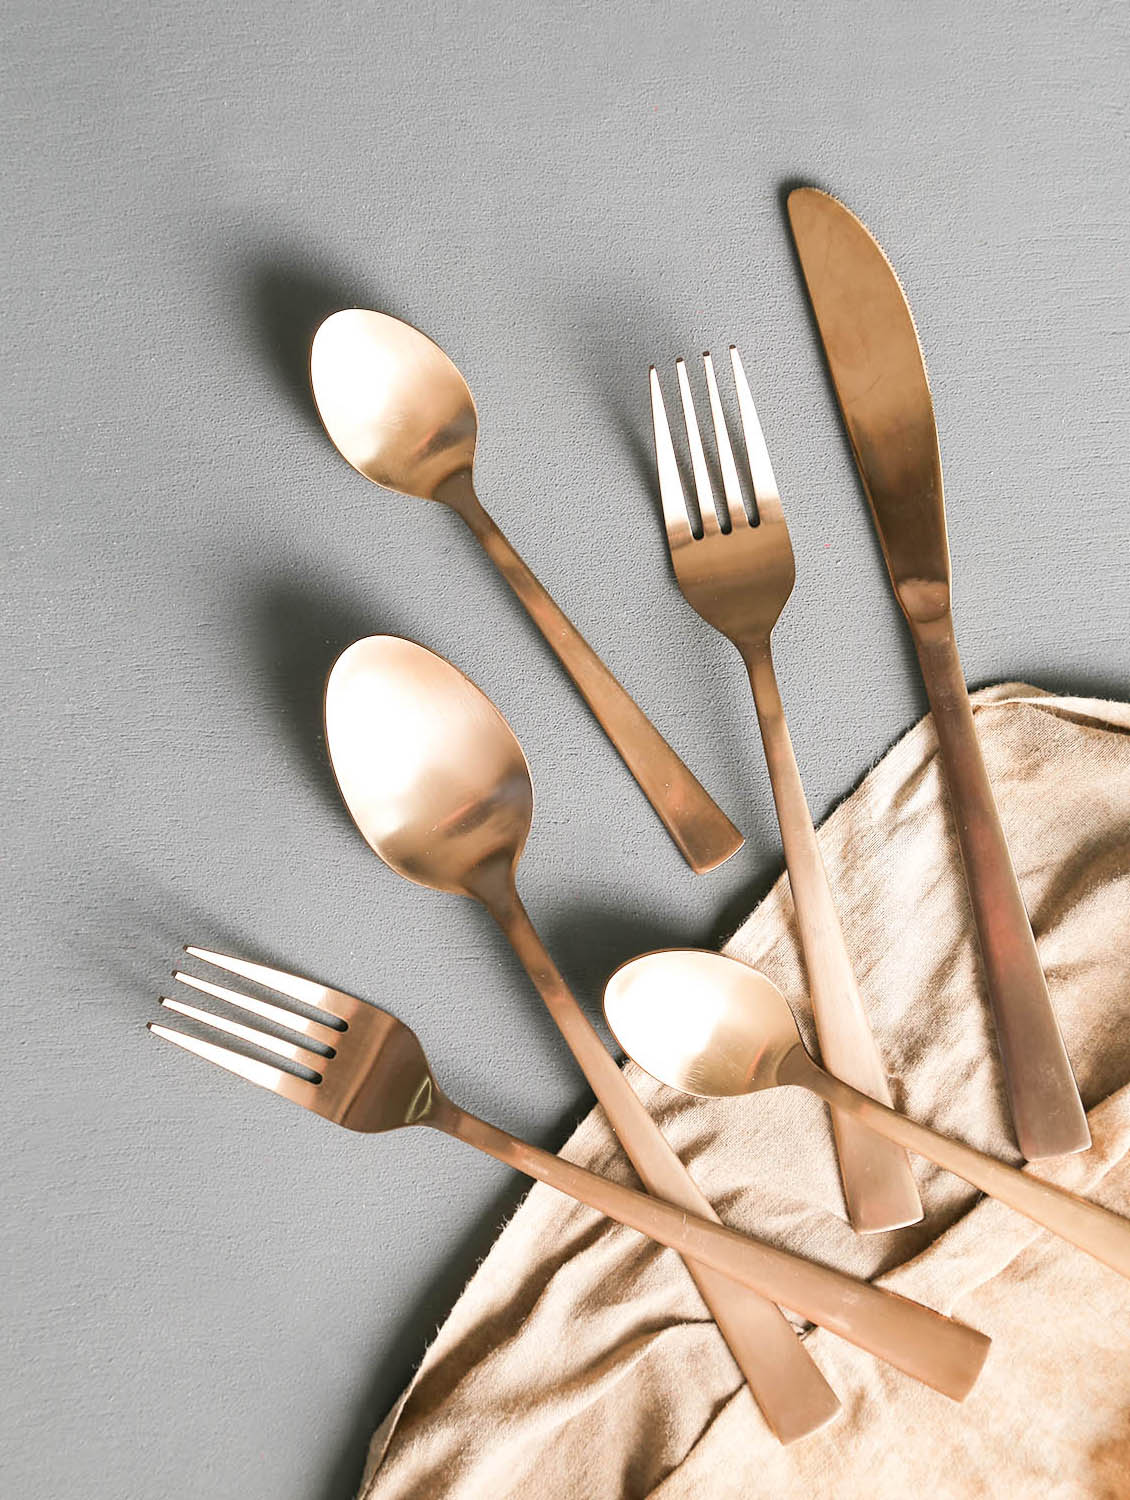 Cutlery set online shopping in india